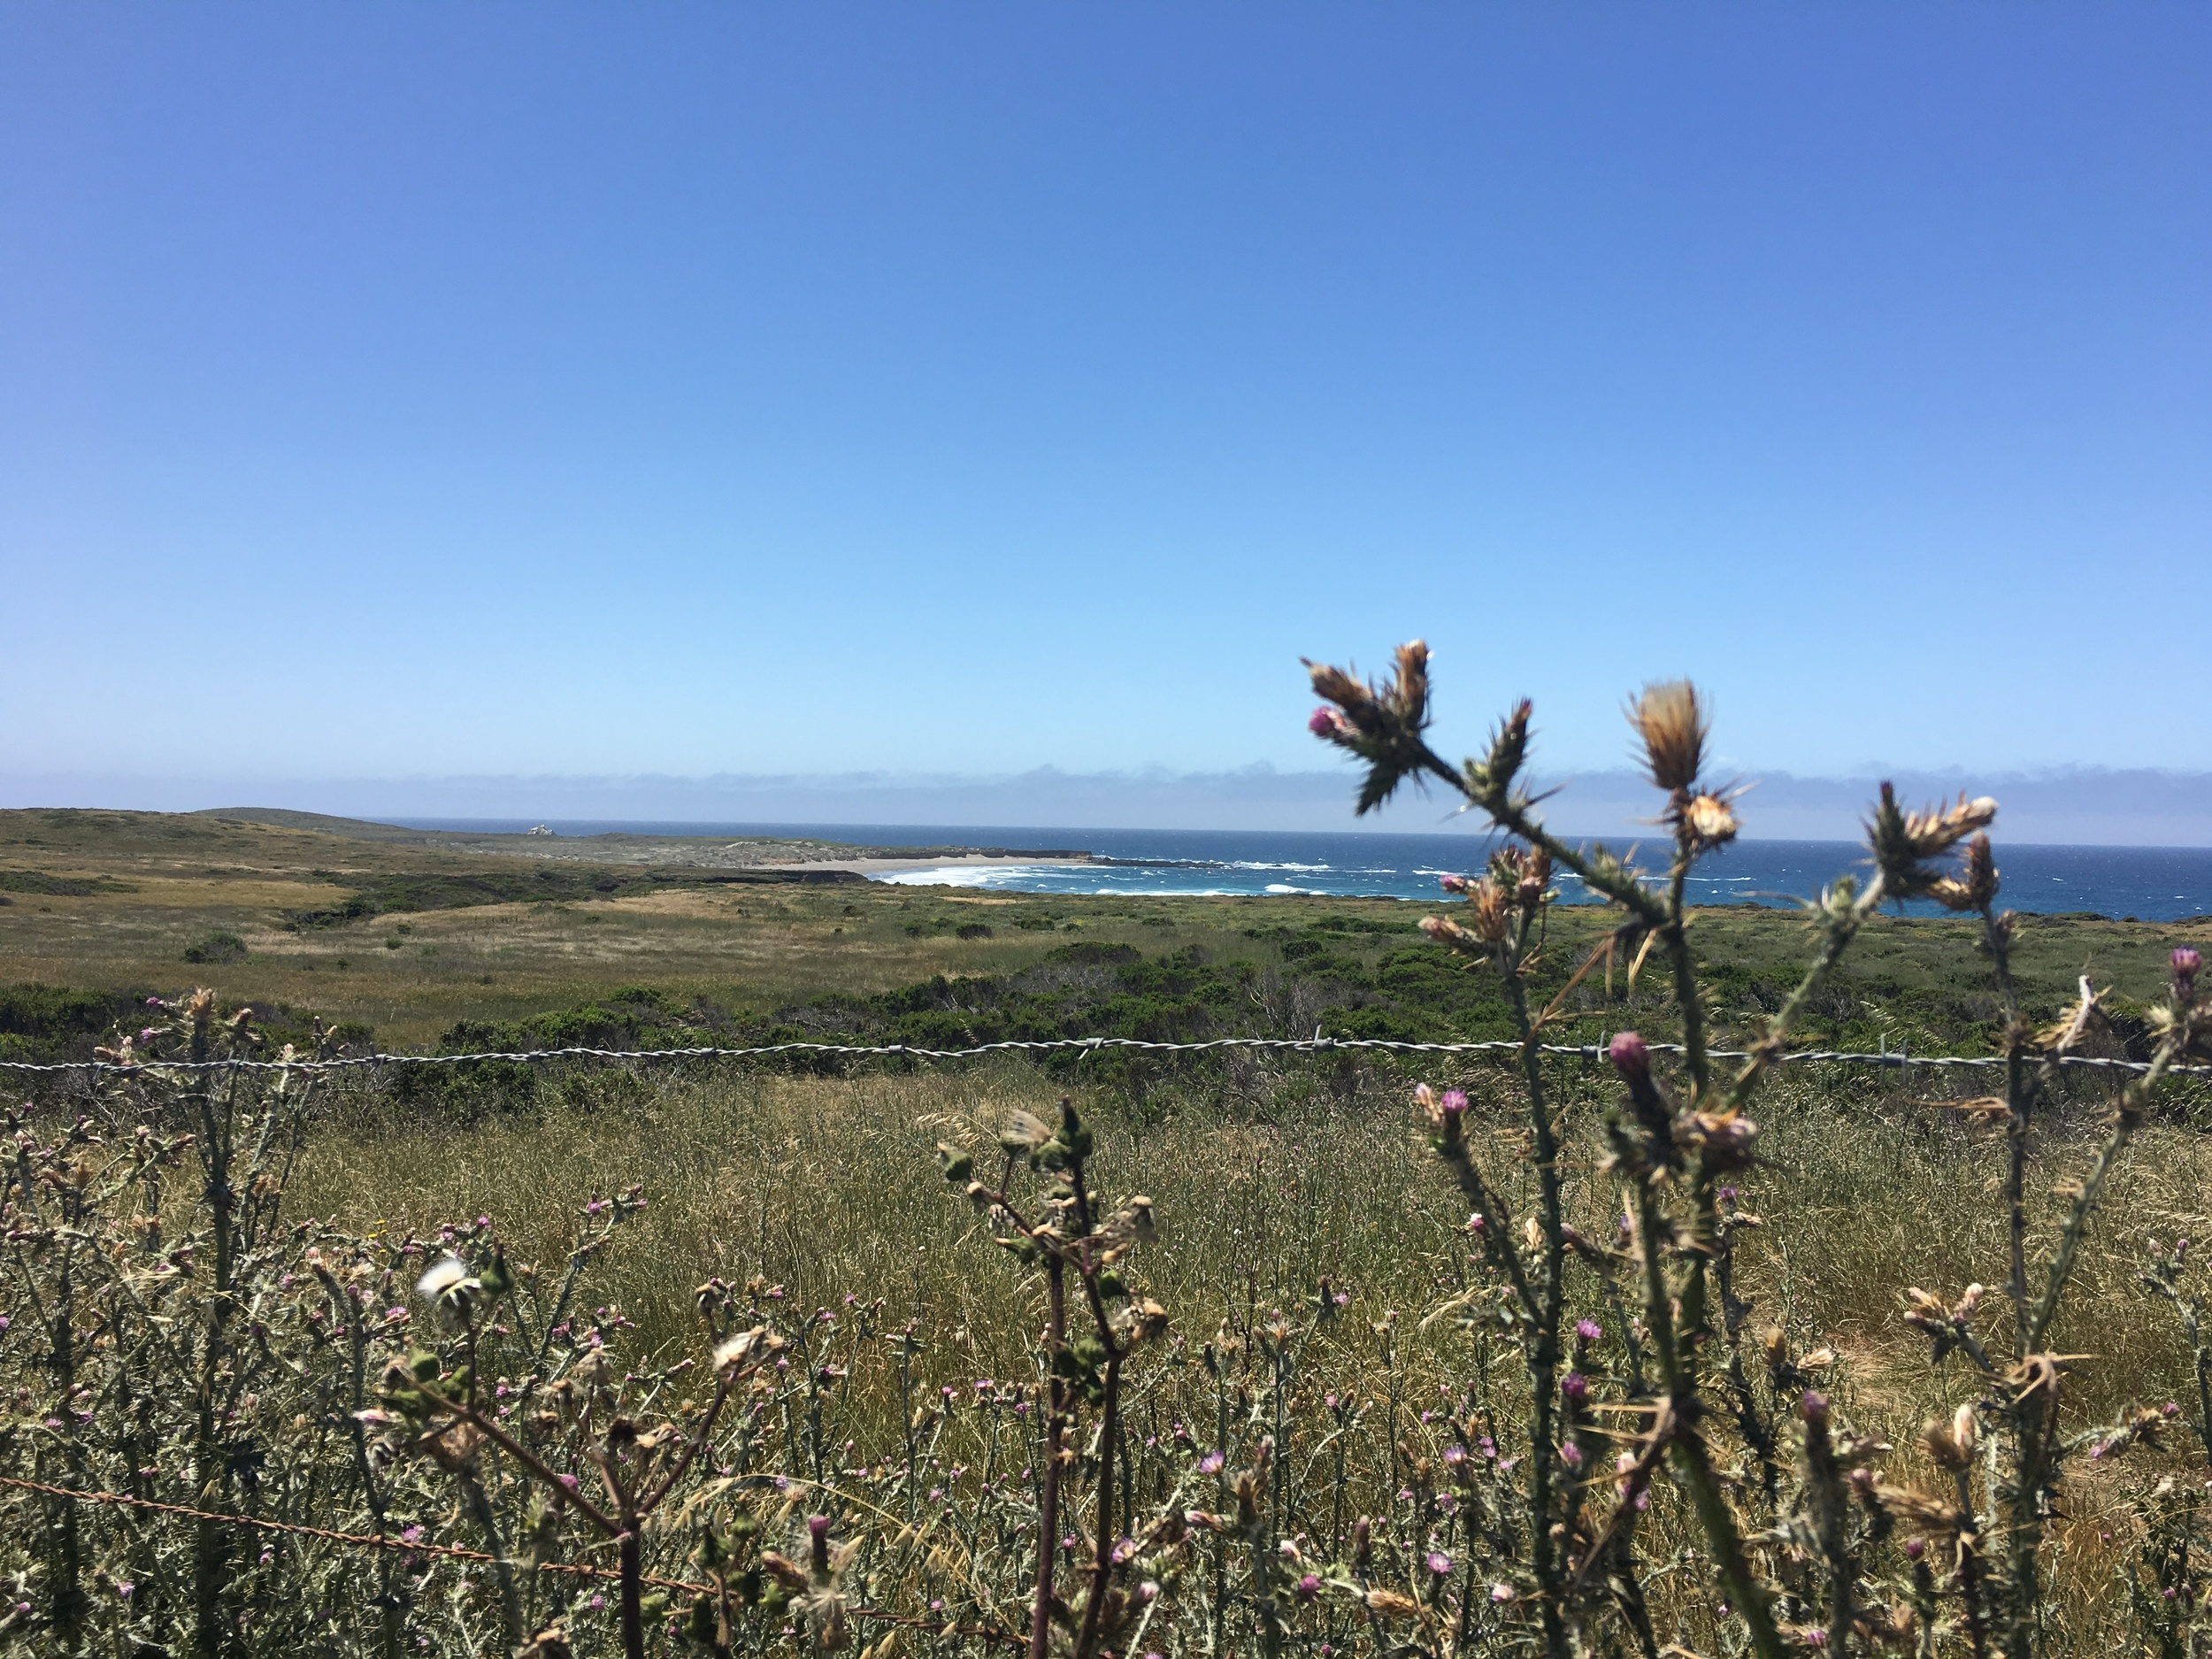 Elephant seals, whales, eagles, zebra the ocean... the view doesn't get much better than this.